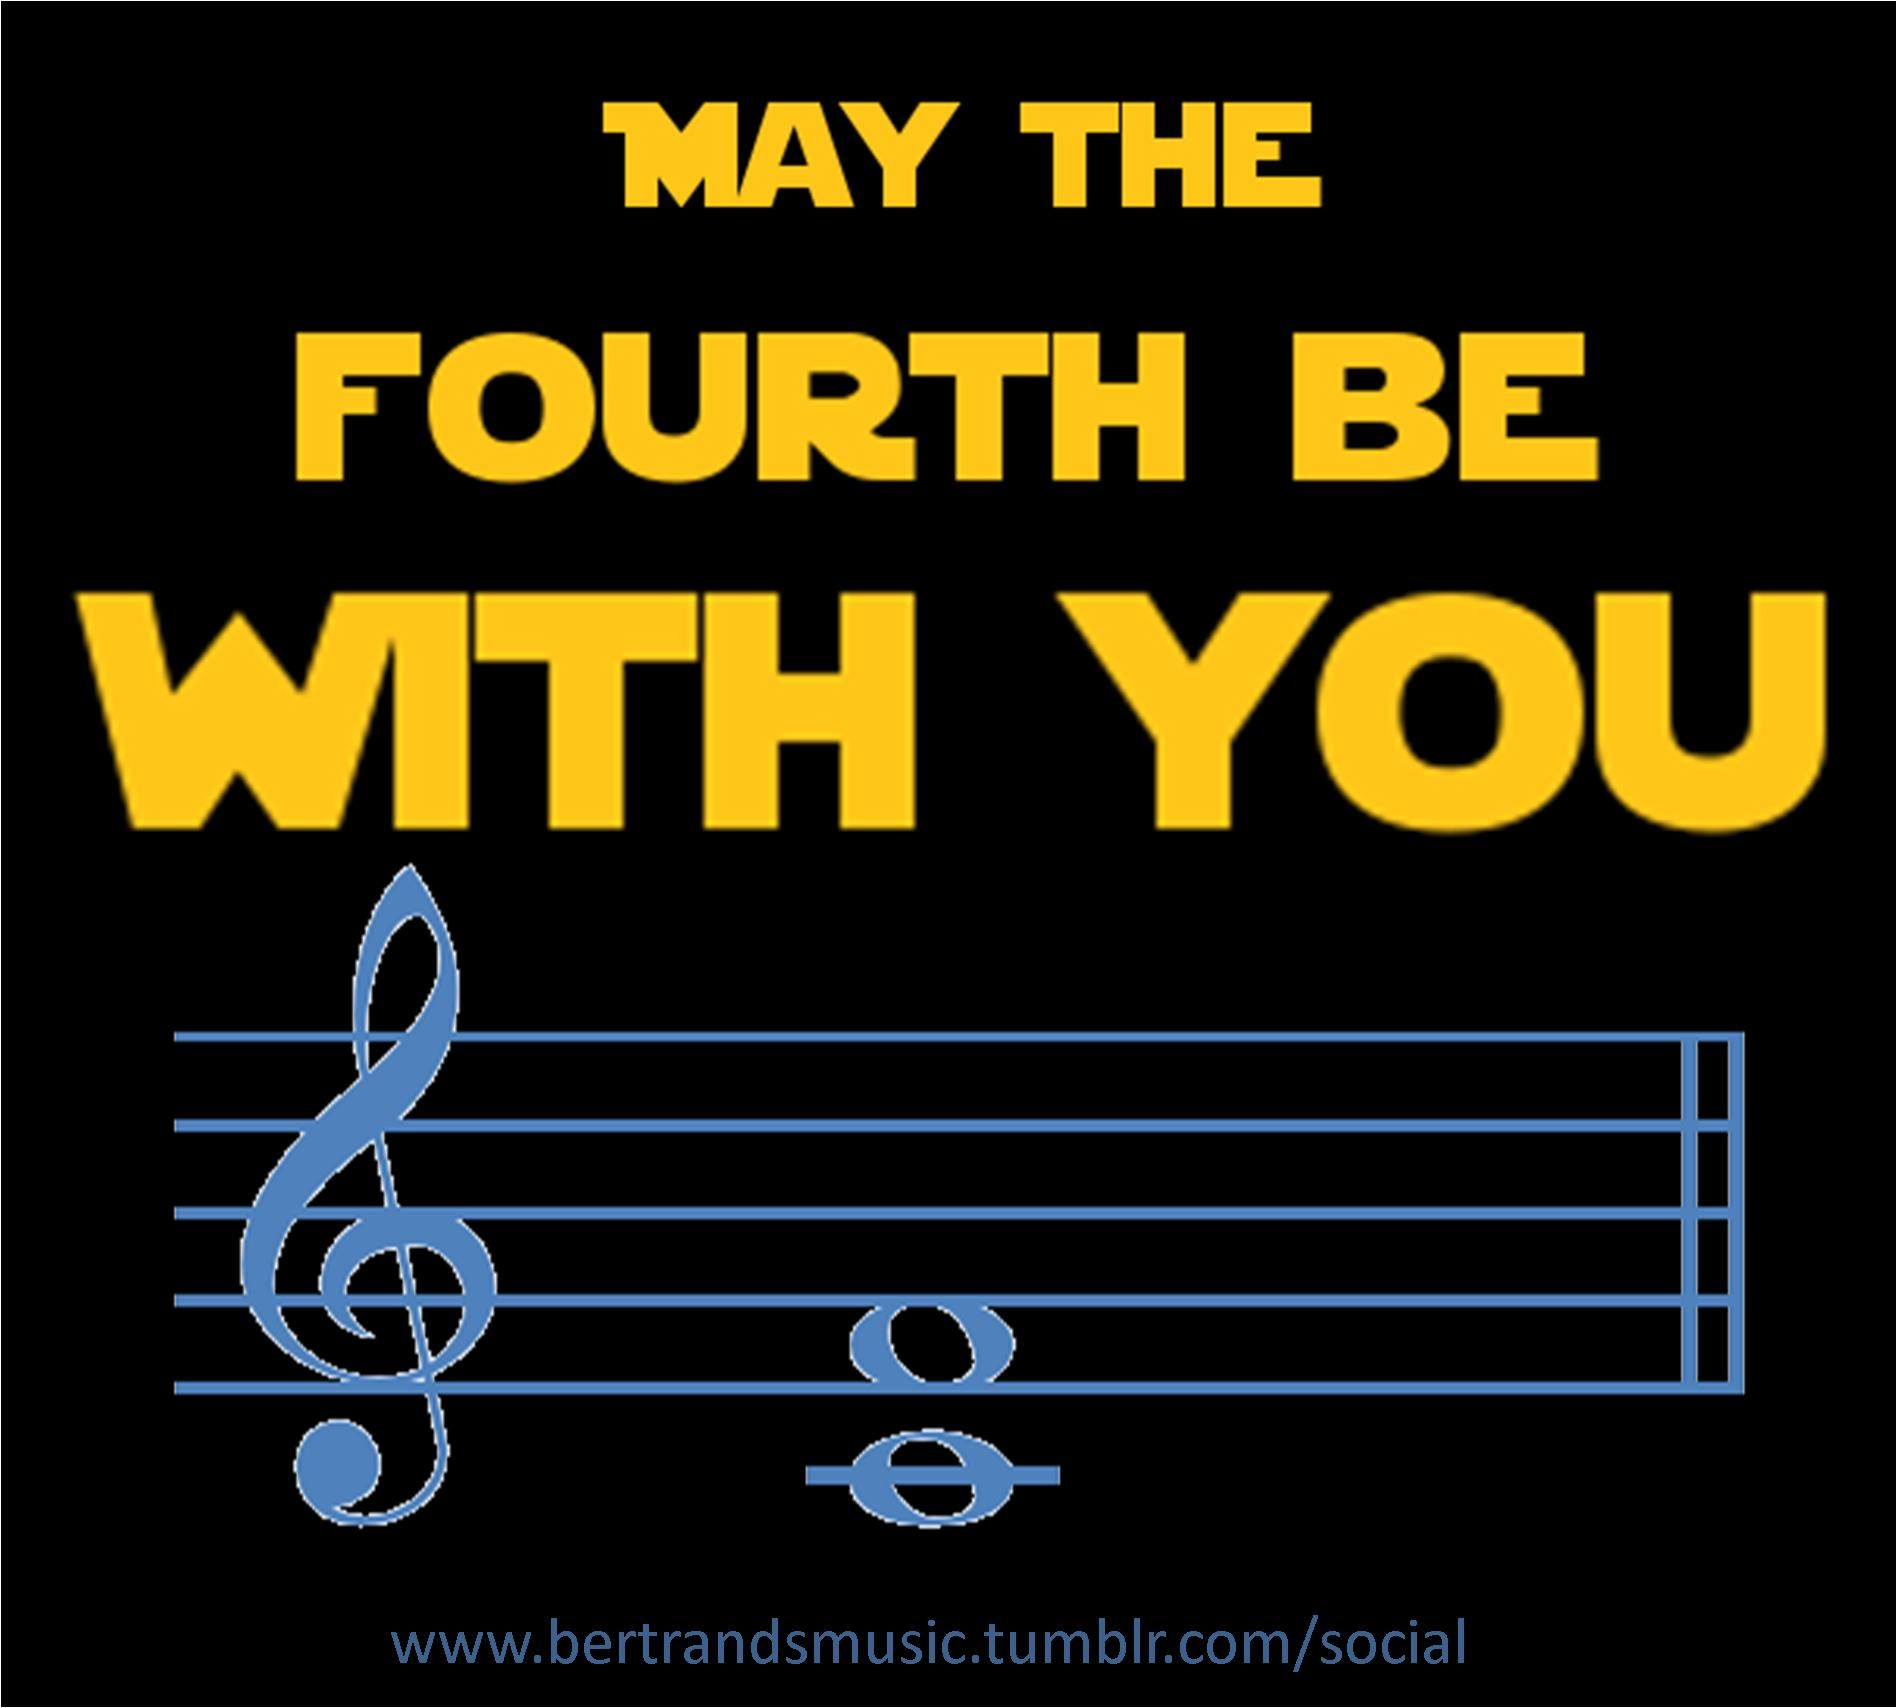 Star Wars May The Fourth Be With You Bertrand S Style